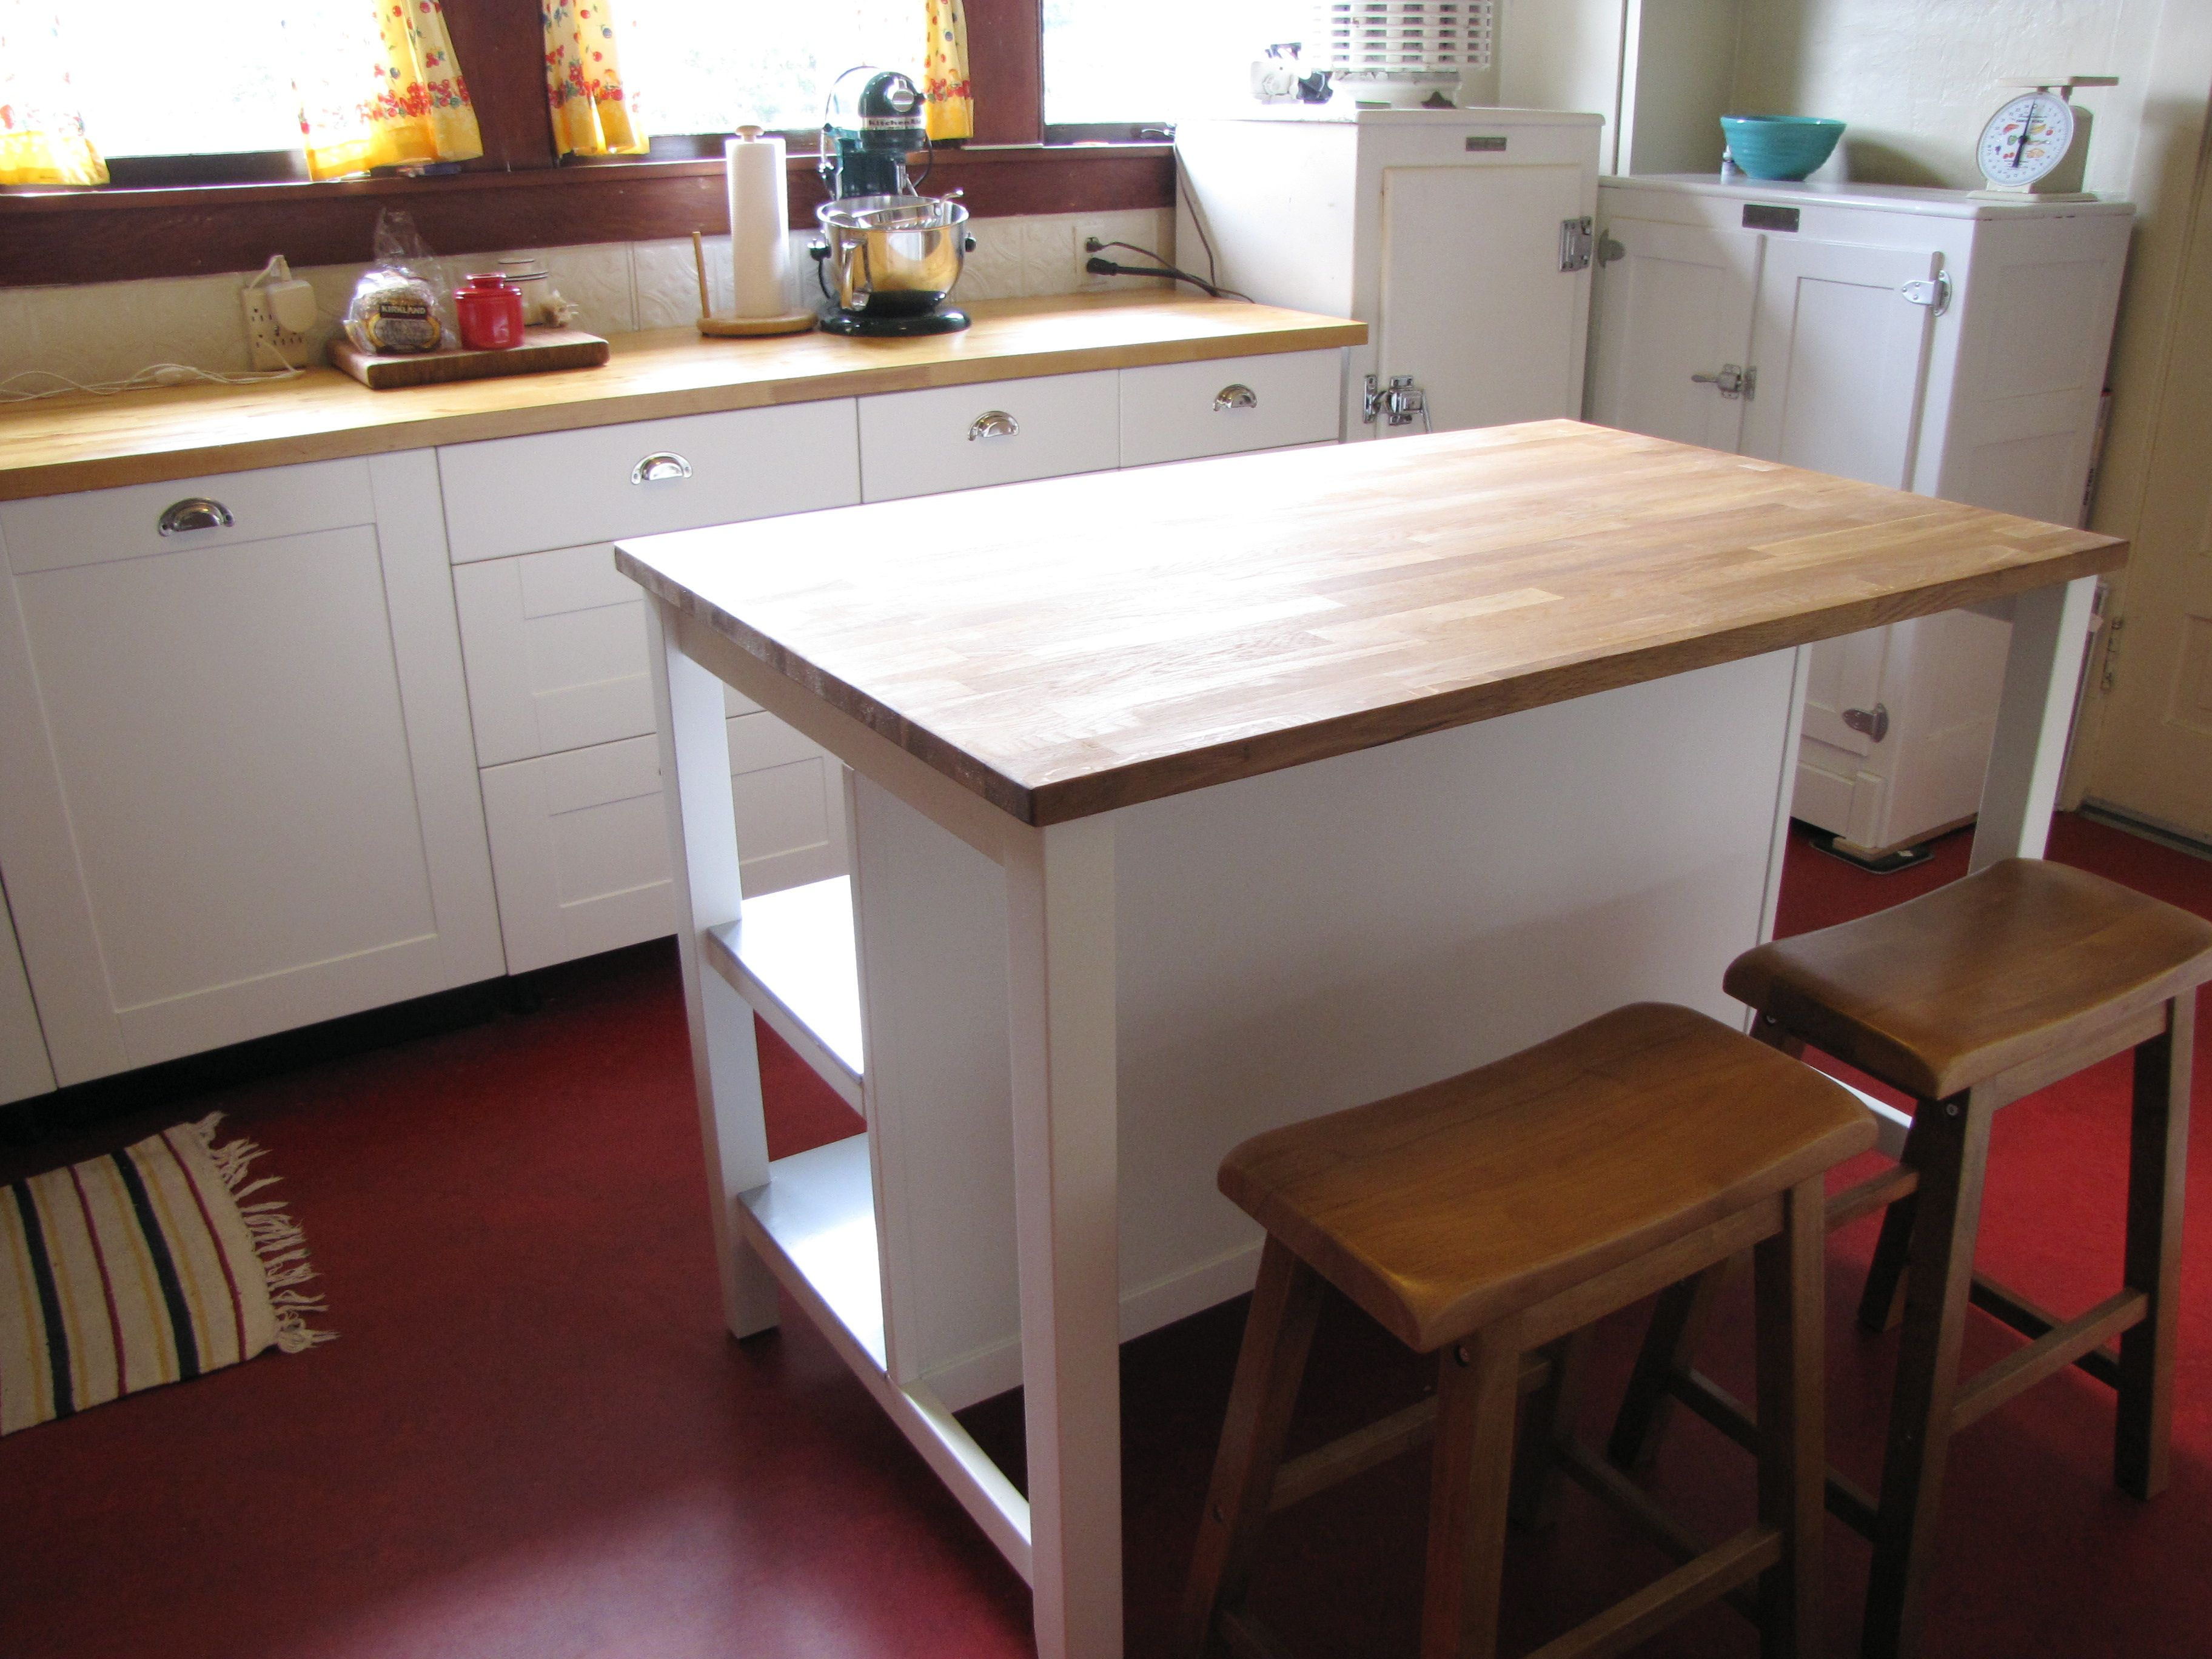 My Kitchen Island Was One Of The First New Things Brought Into Our Home. It